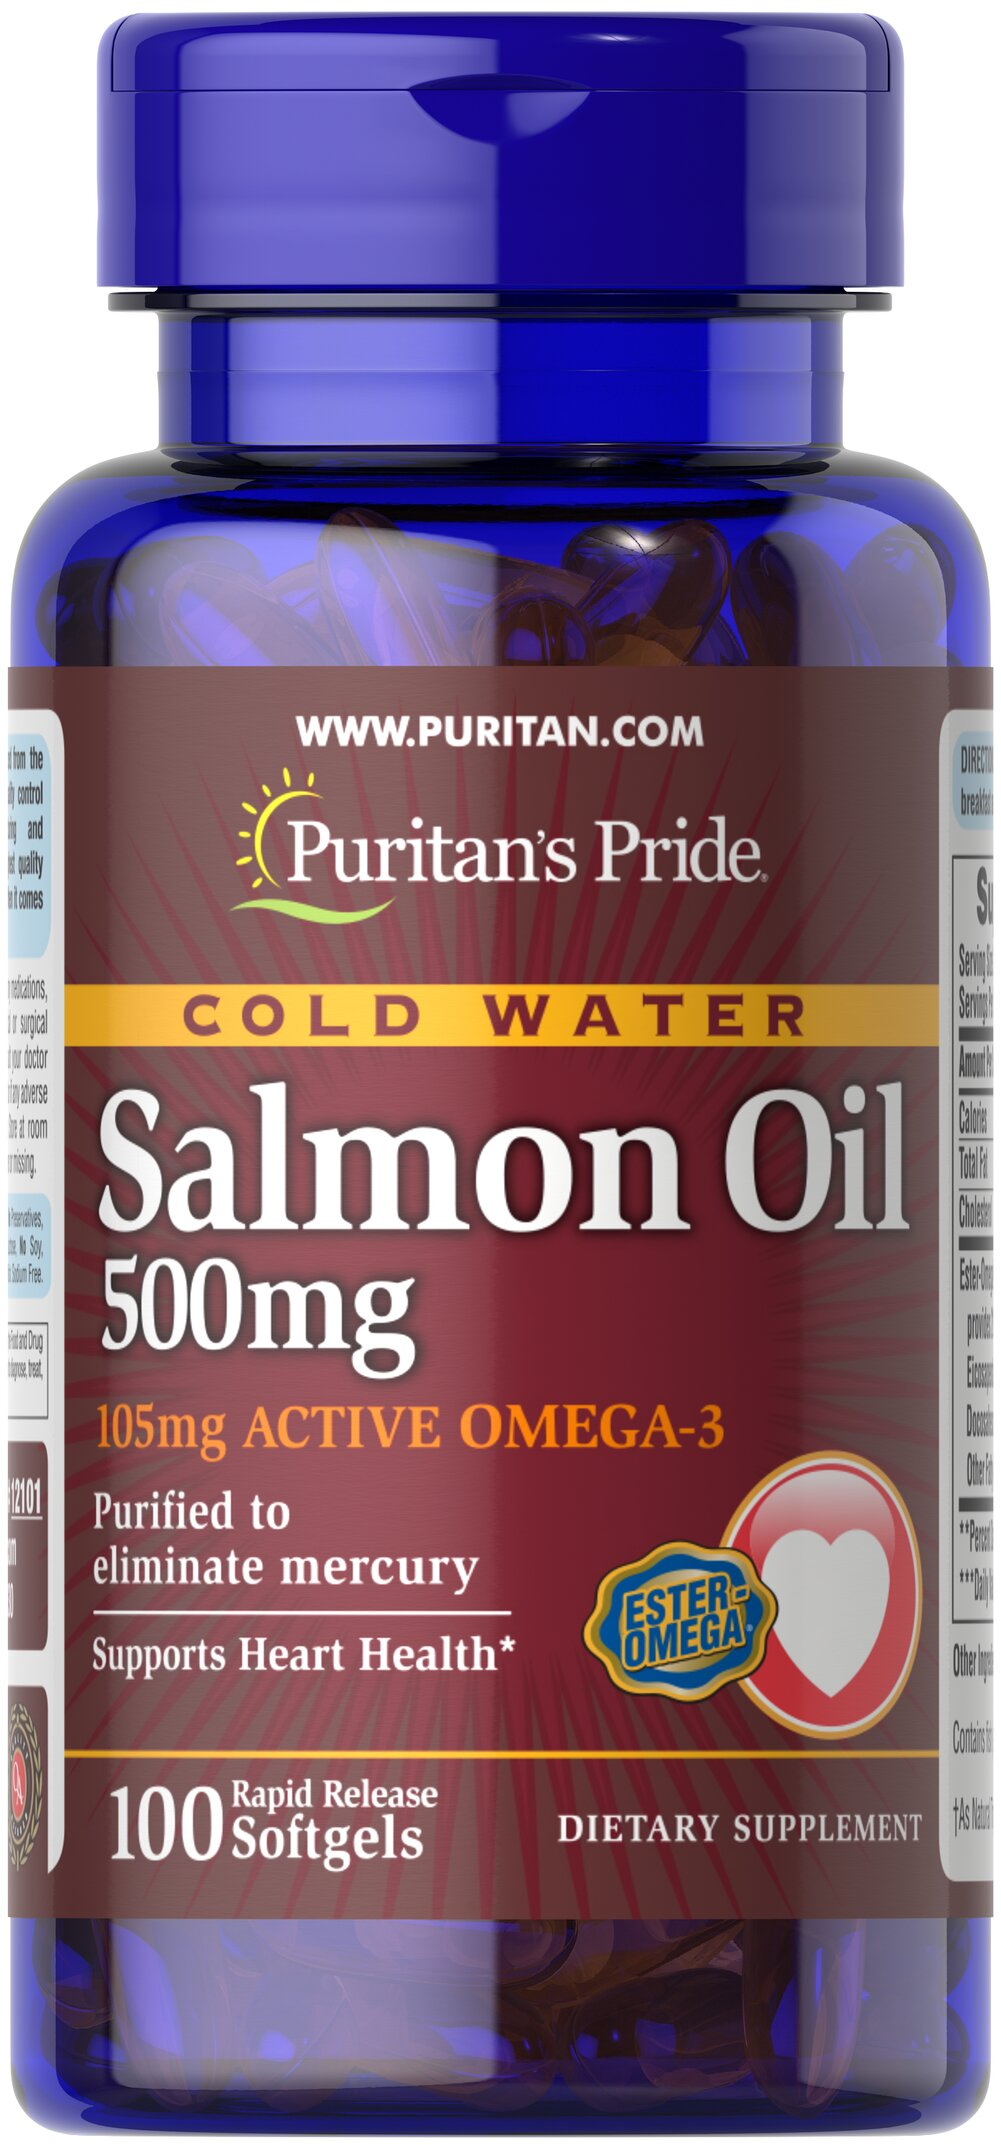 Omega-3 Salmon Oil 500 mg (105 mg Active Omega-3) <p><strong>Purified to Eliminate Mercury</strong></p><p>Puritan's Pride Salmon Oil contains the finest Salmon Oil available. Take two softgels two times a day to gain the essential fatty acids your body needs for good health.** Salmon contains a high concentration of Omega-3 fatty acids that have been shown to help promote metabolic, circulatory and heart health.**</p> 100 Softgels 500 mg $9.20